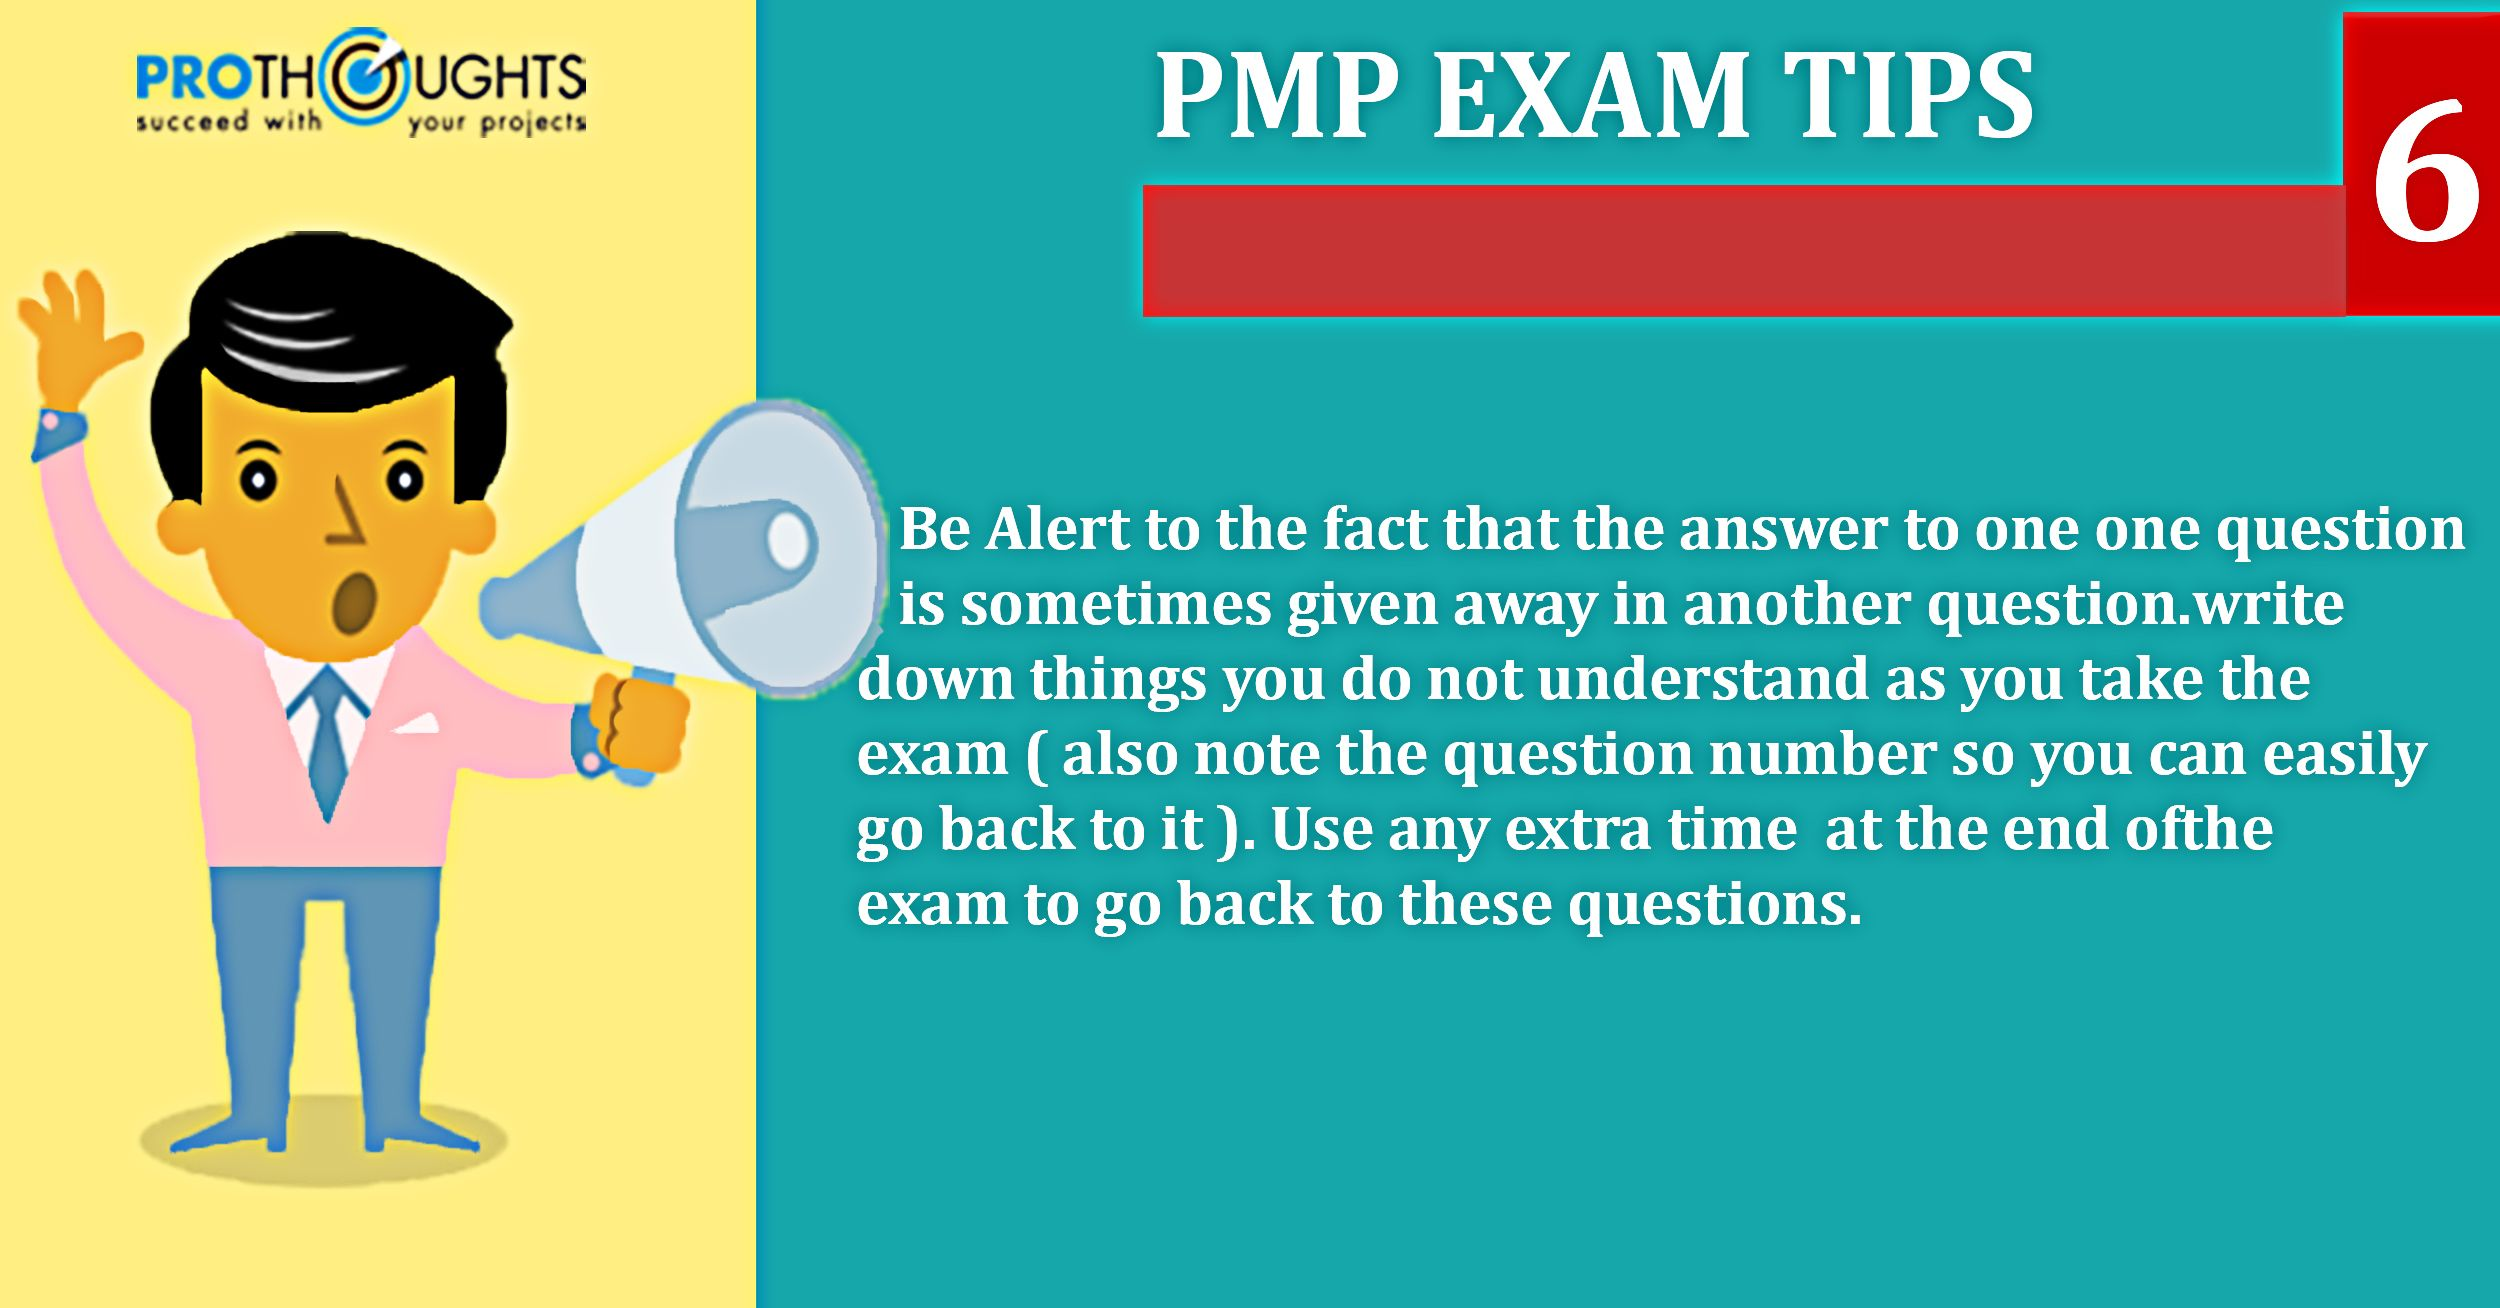 Preparing For The Pmp Certification Follow Us For More Pmp Exam